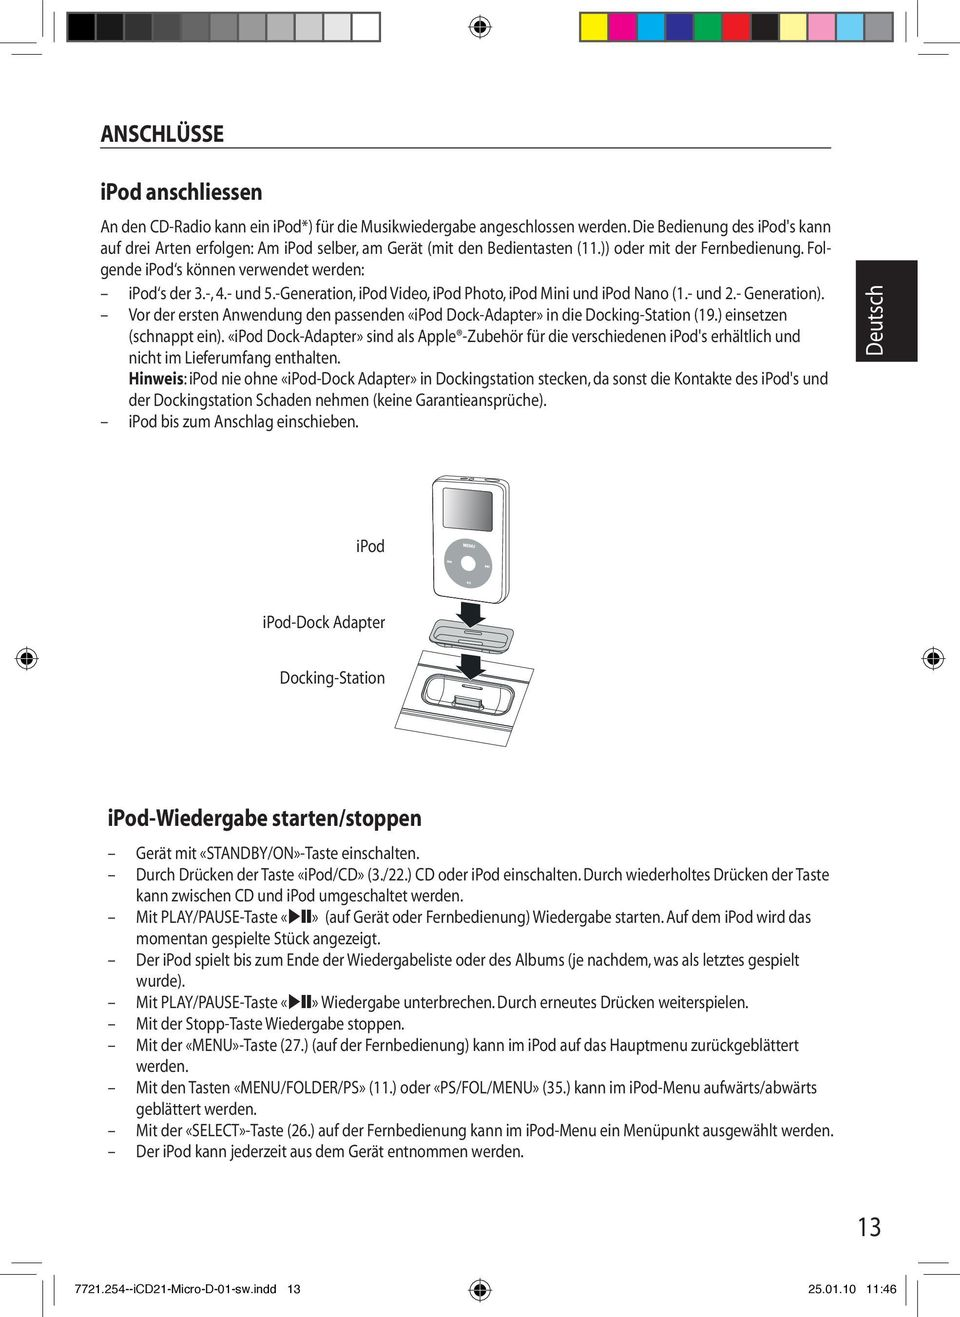 - und 5.-Generation, ipod Video, ipod Photo, ipod Mini und ipod Nano (1.- und 2.- Generation). Vor der ersten Anwendung den passenden «ipod Dock-Adapter» in die Docking-Station (19.